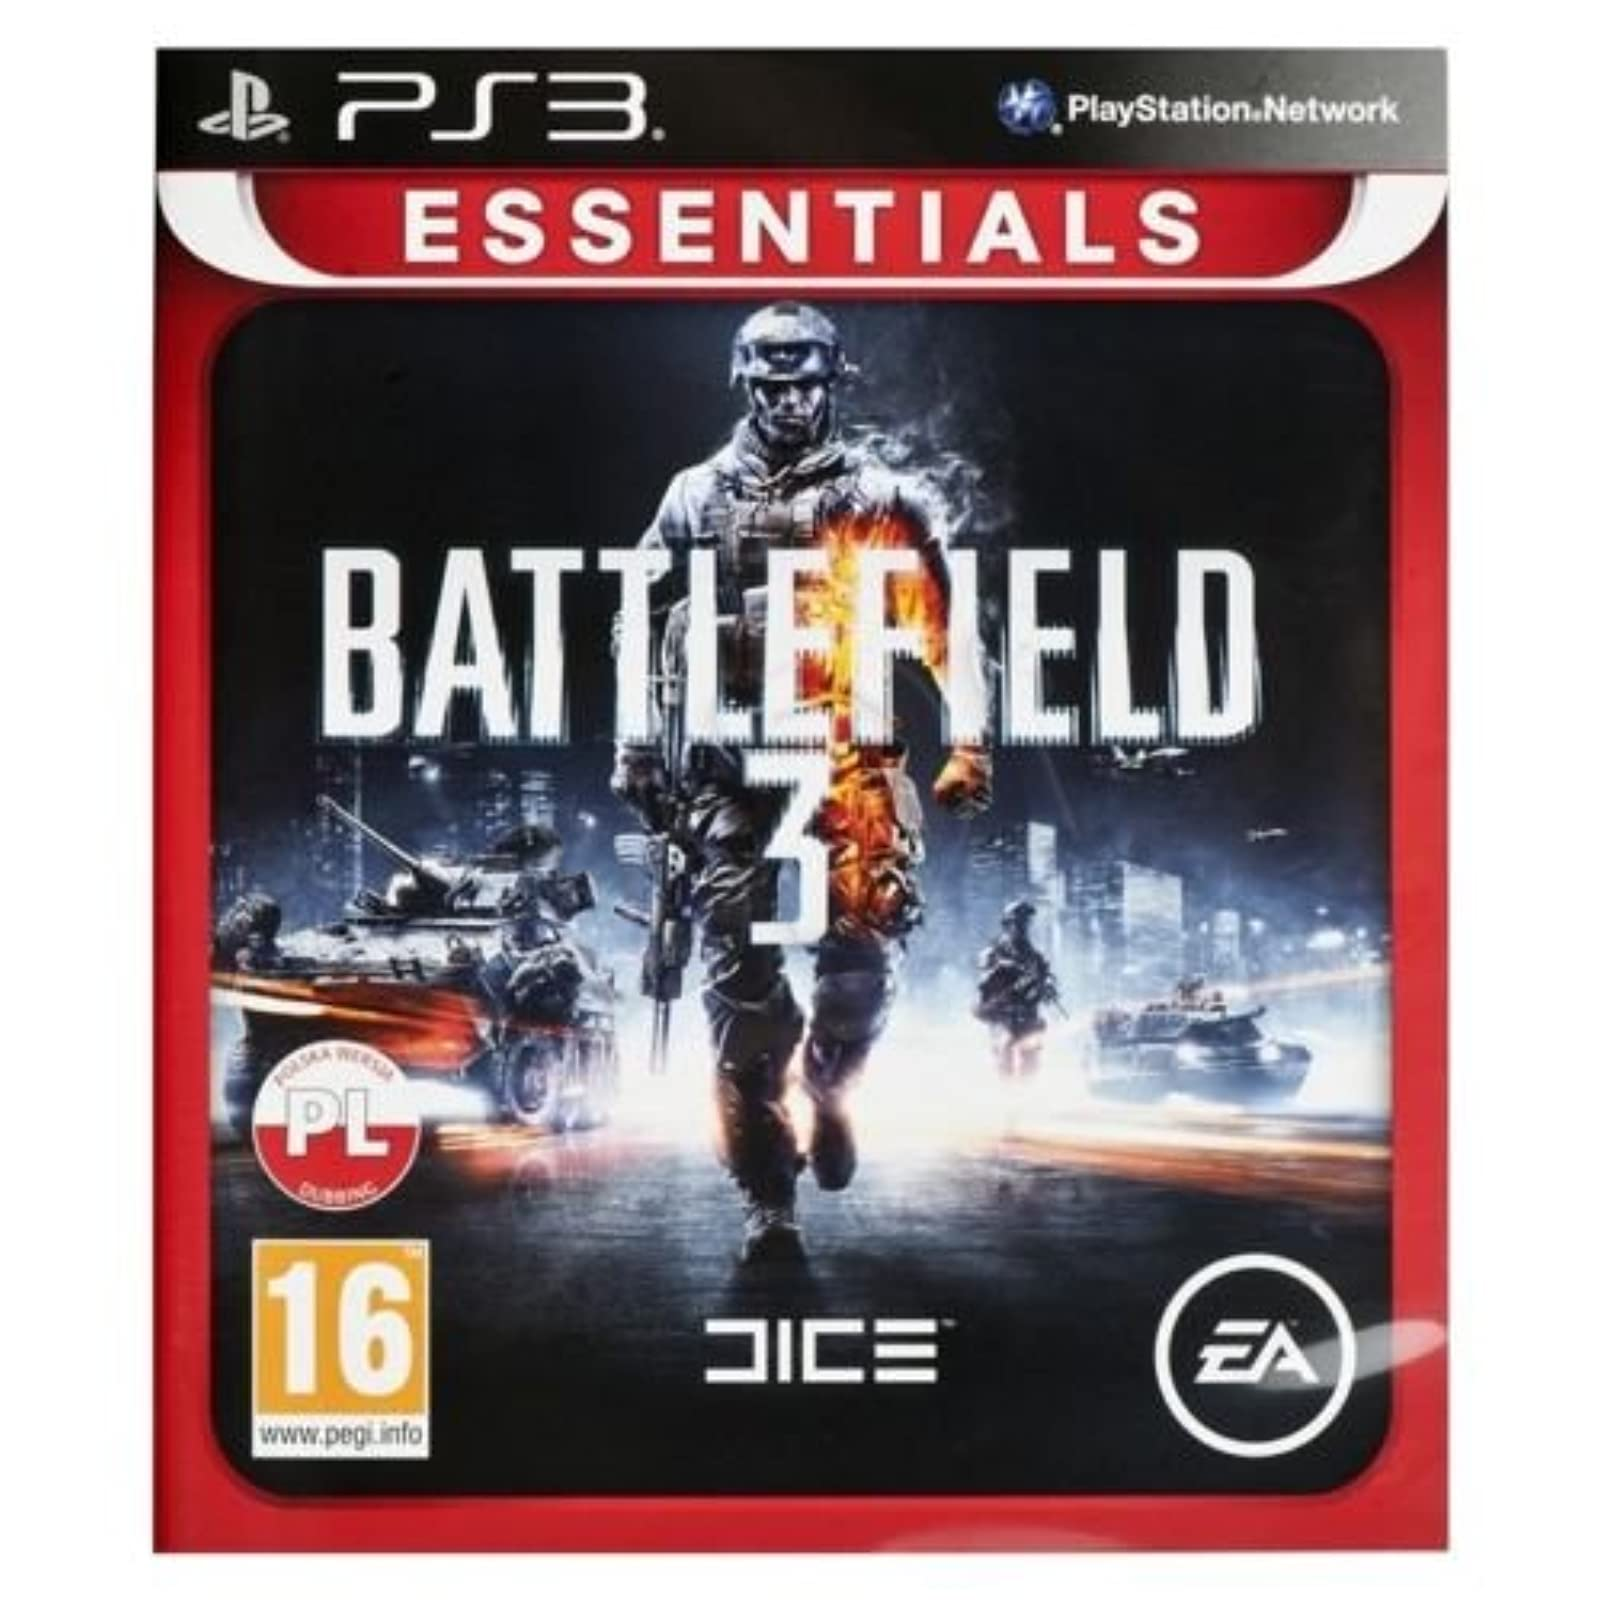 Battlefield 3 Game For PlayStation 3 PS3